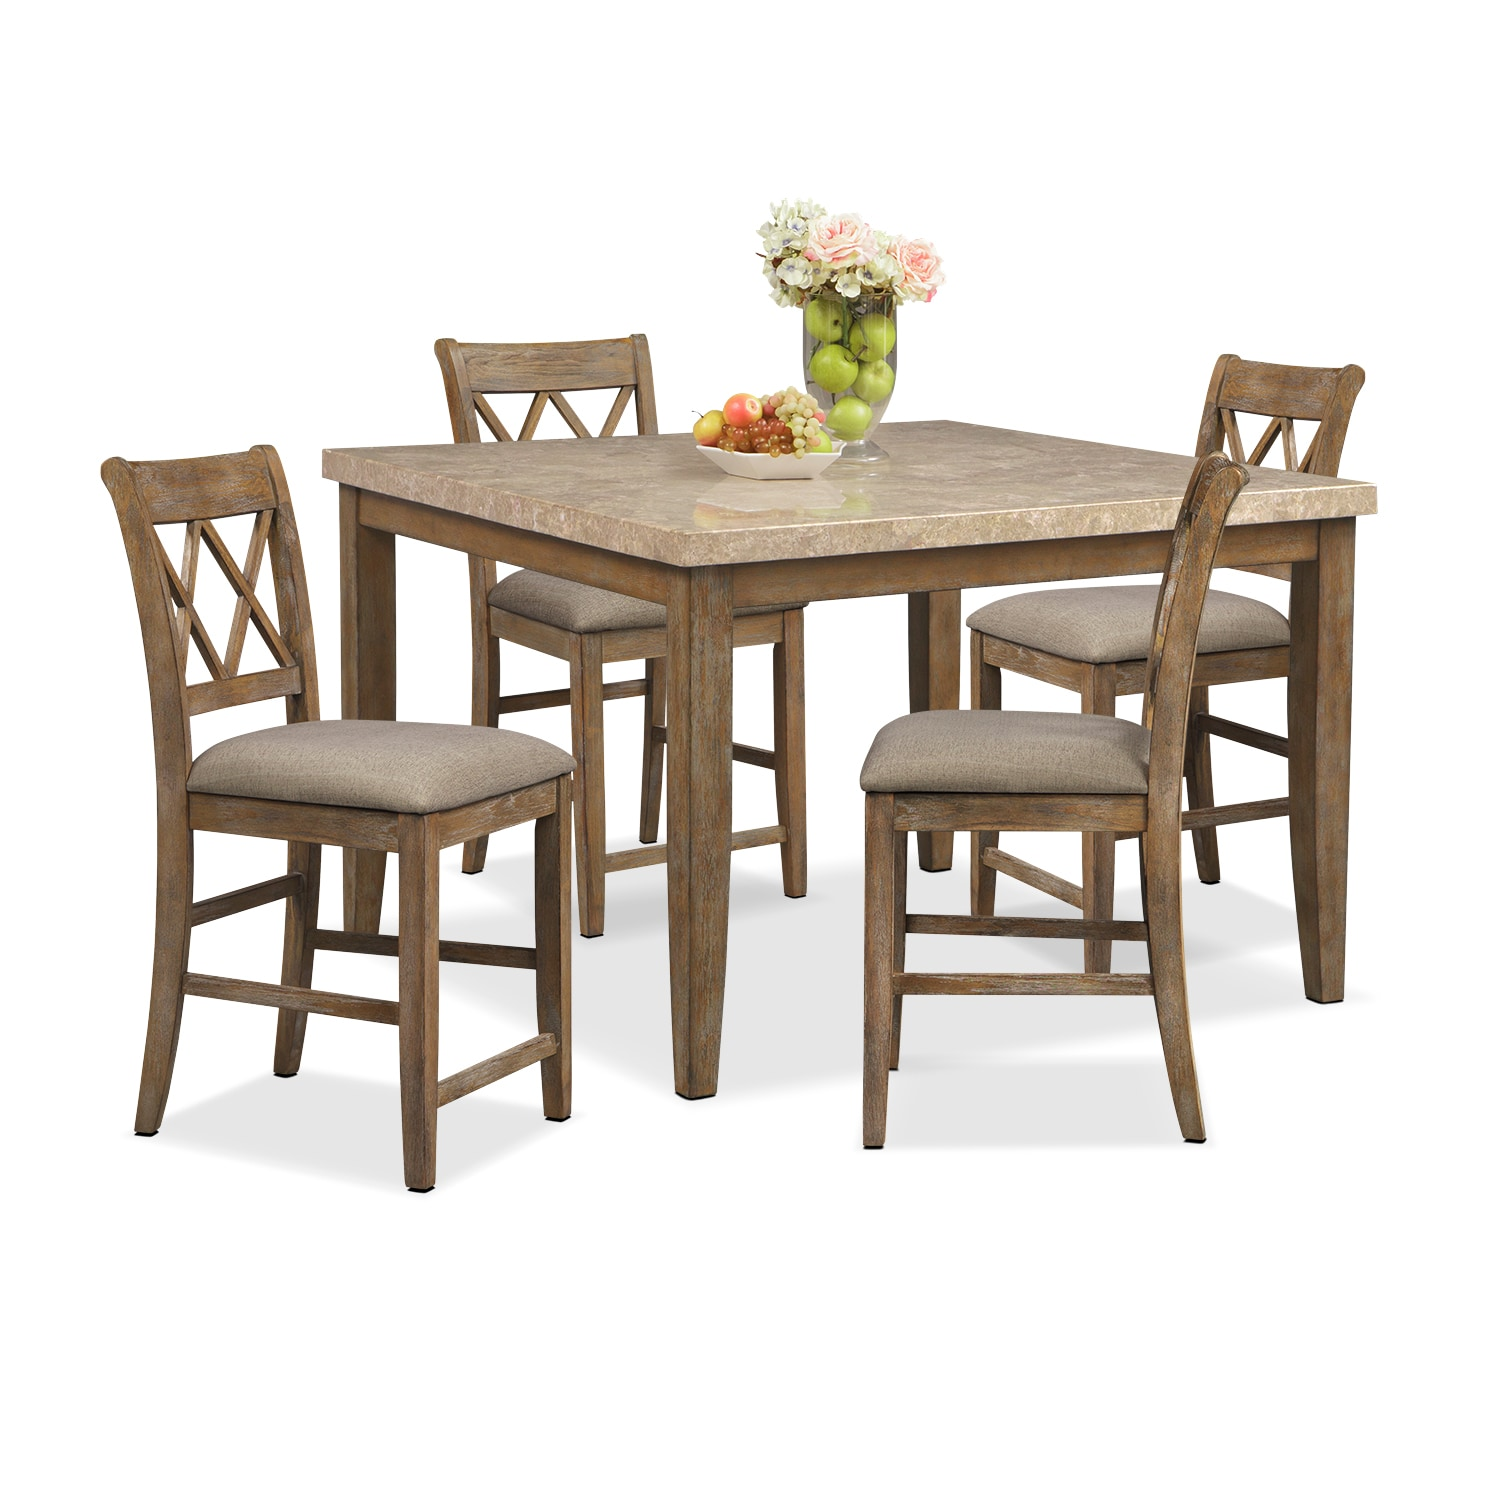 Sedona Gray 5 Pc. Counter-Height Dining Room